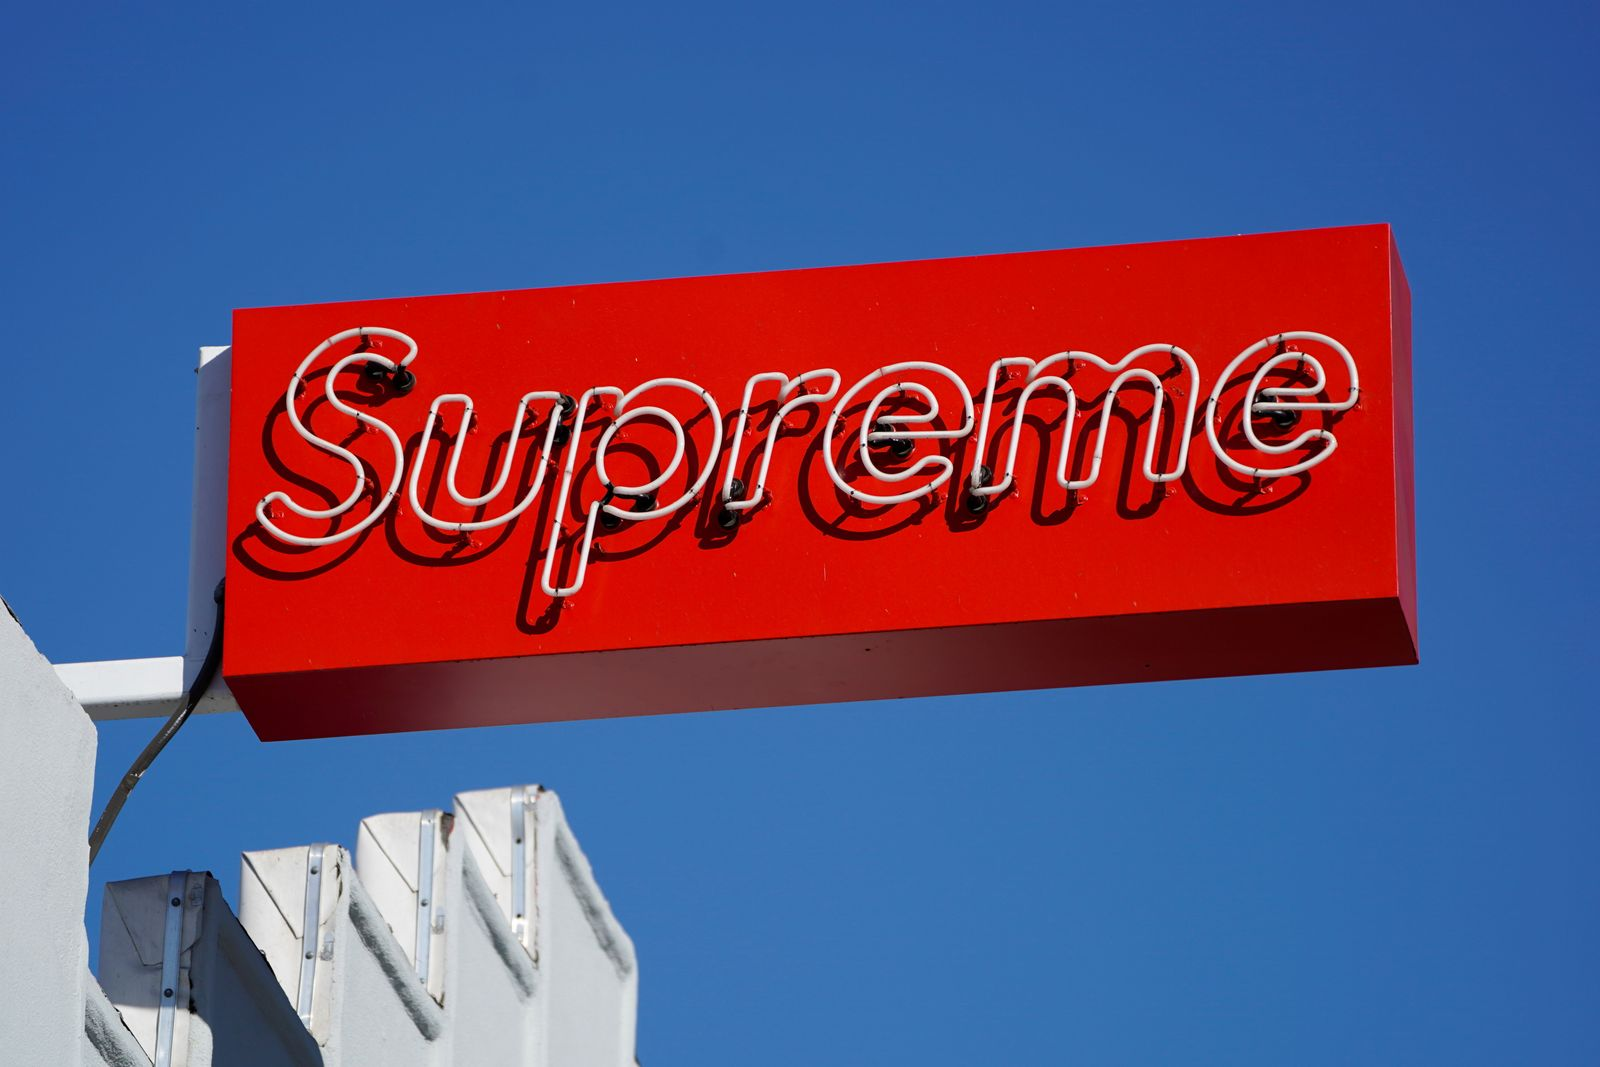 A Supreme clothing store sign is seen on Fairfax in Los Angeles, California